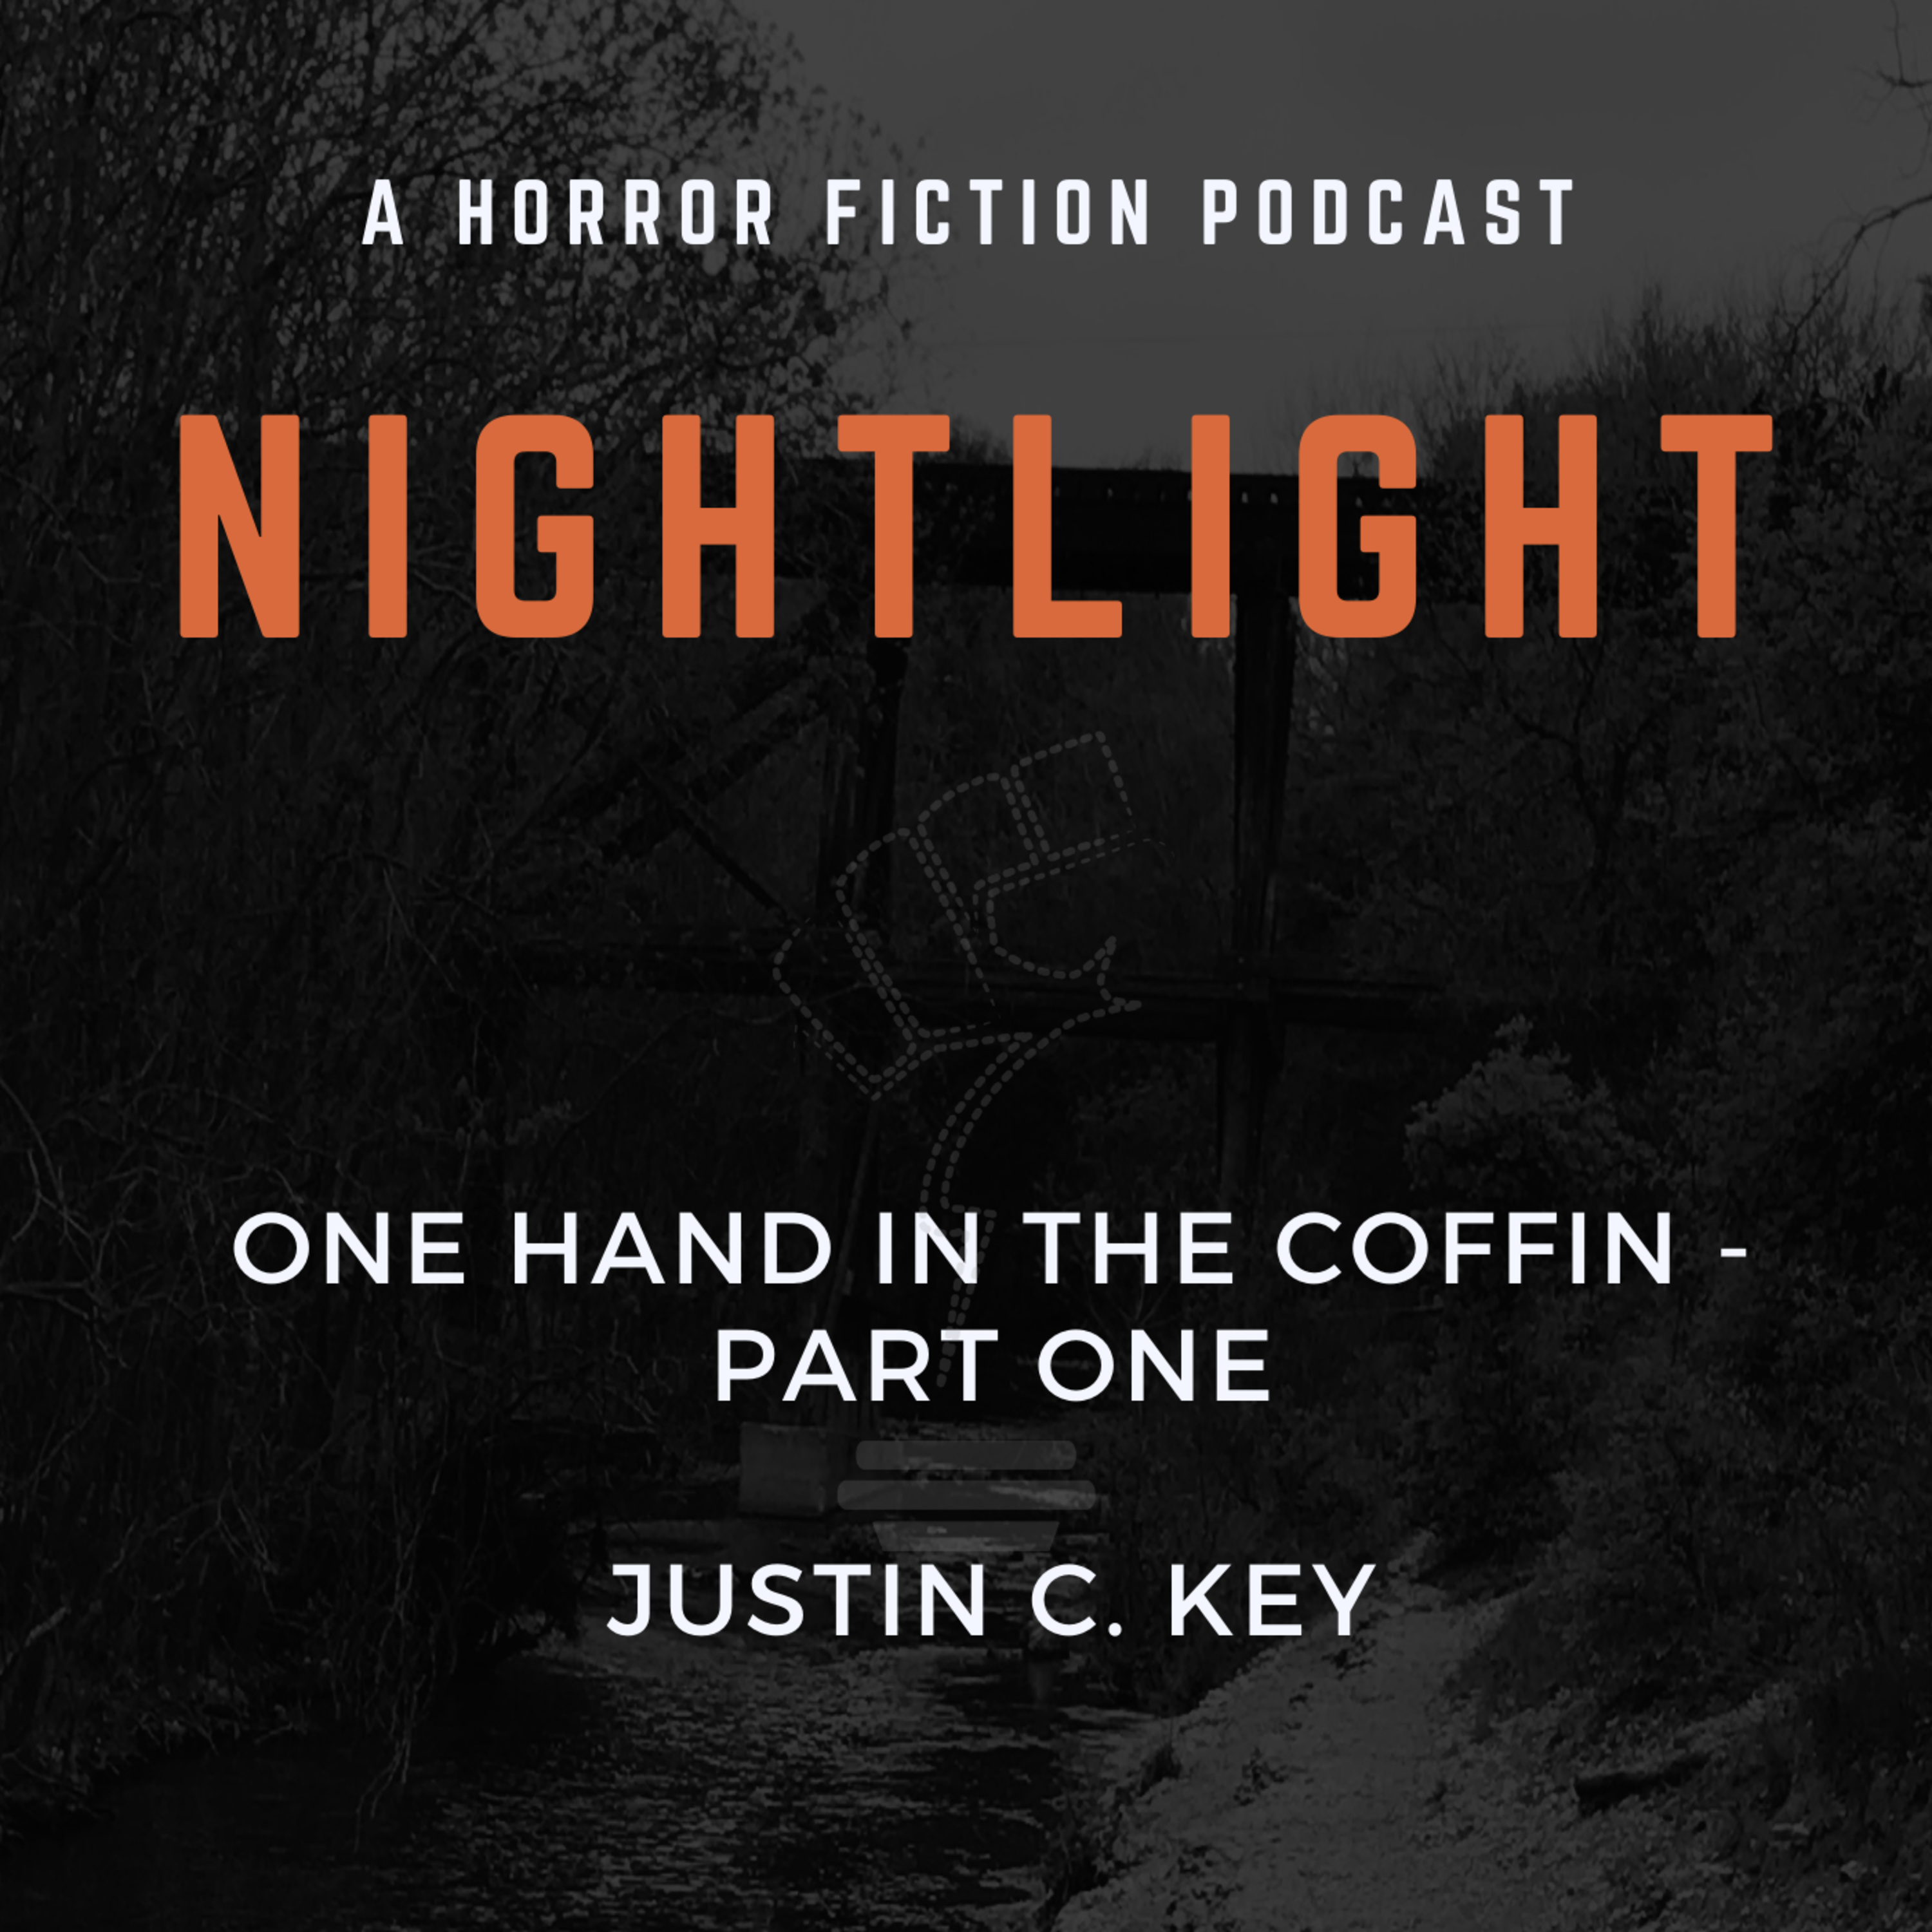 310: One Hand in the Coffin by Justin C. Key